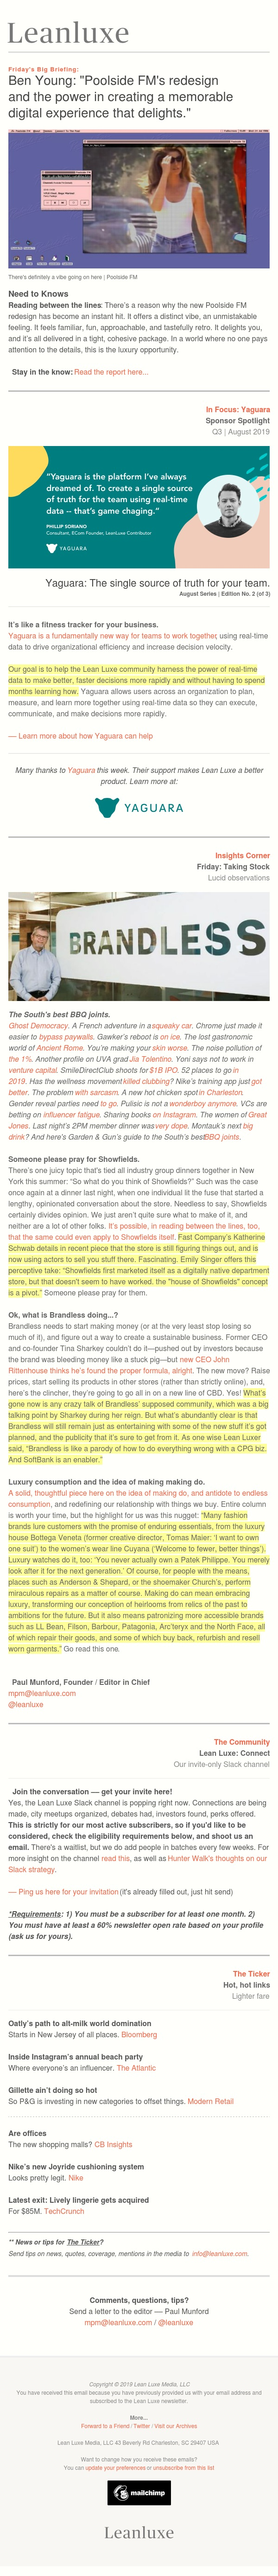 The Debrief No. 215: Poolside FM's redesign and the power in creating a digital experience that delights — Someone please pray for Showfields.